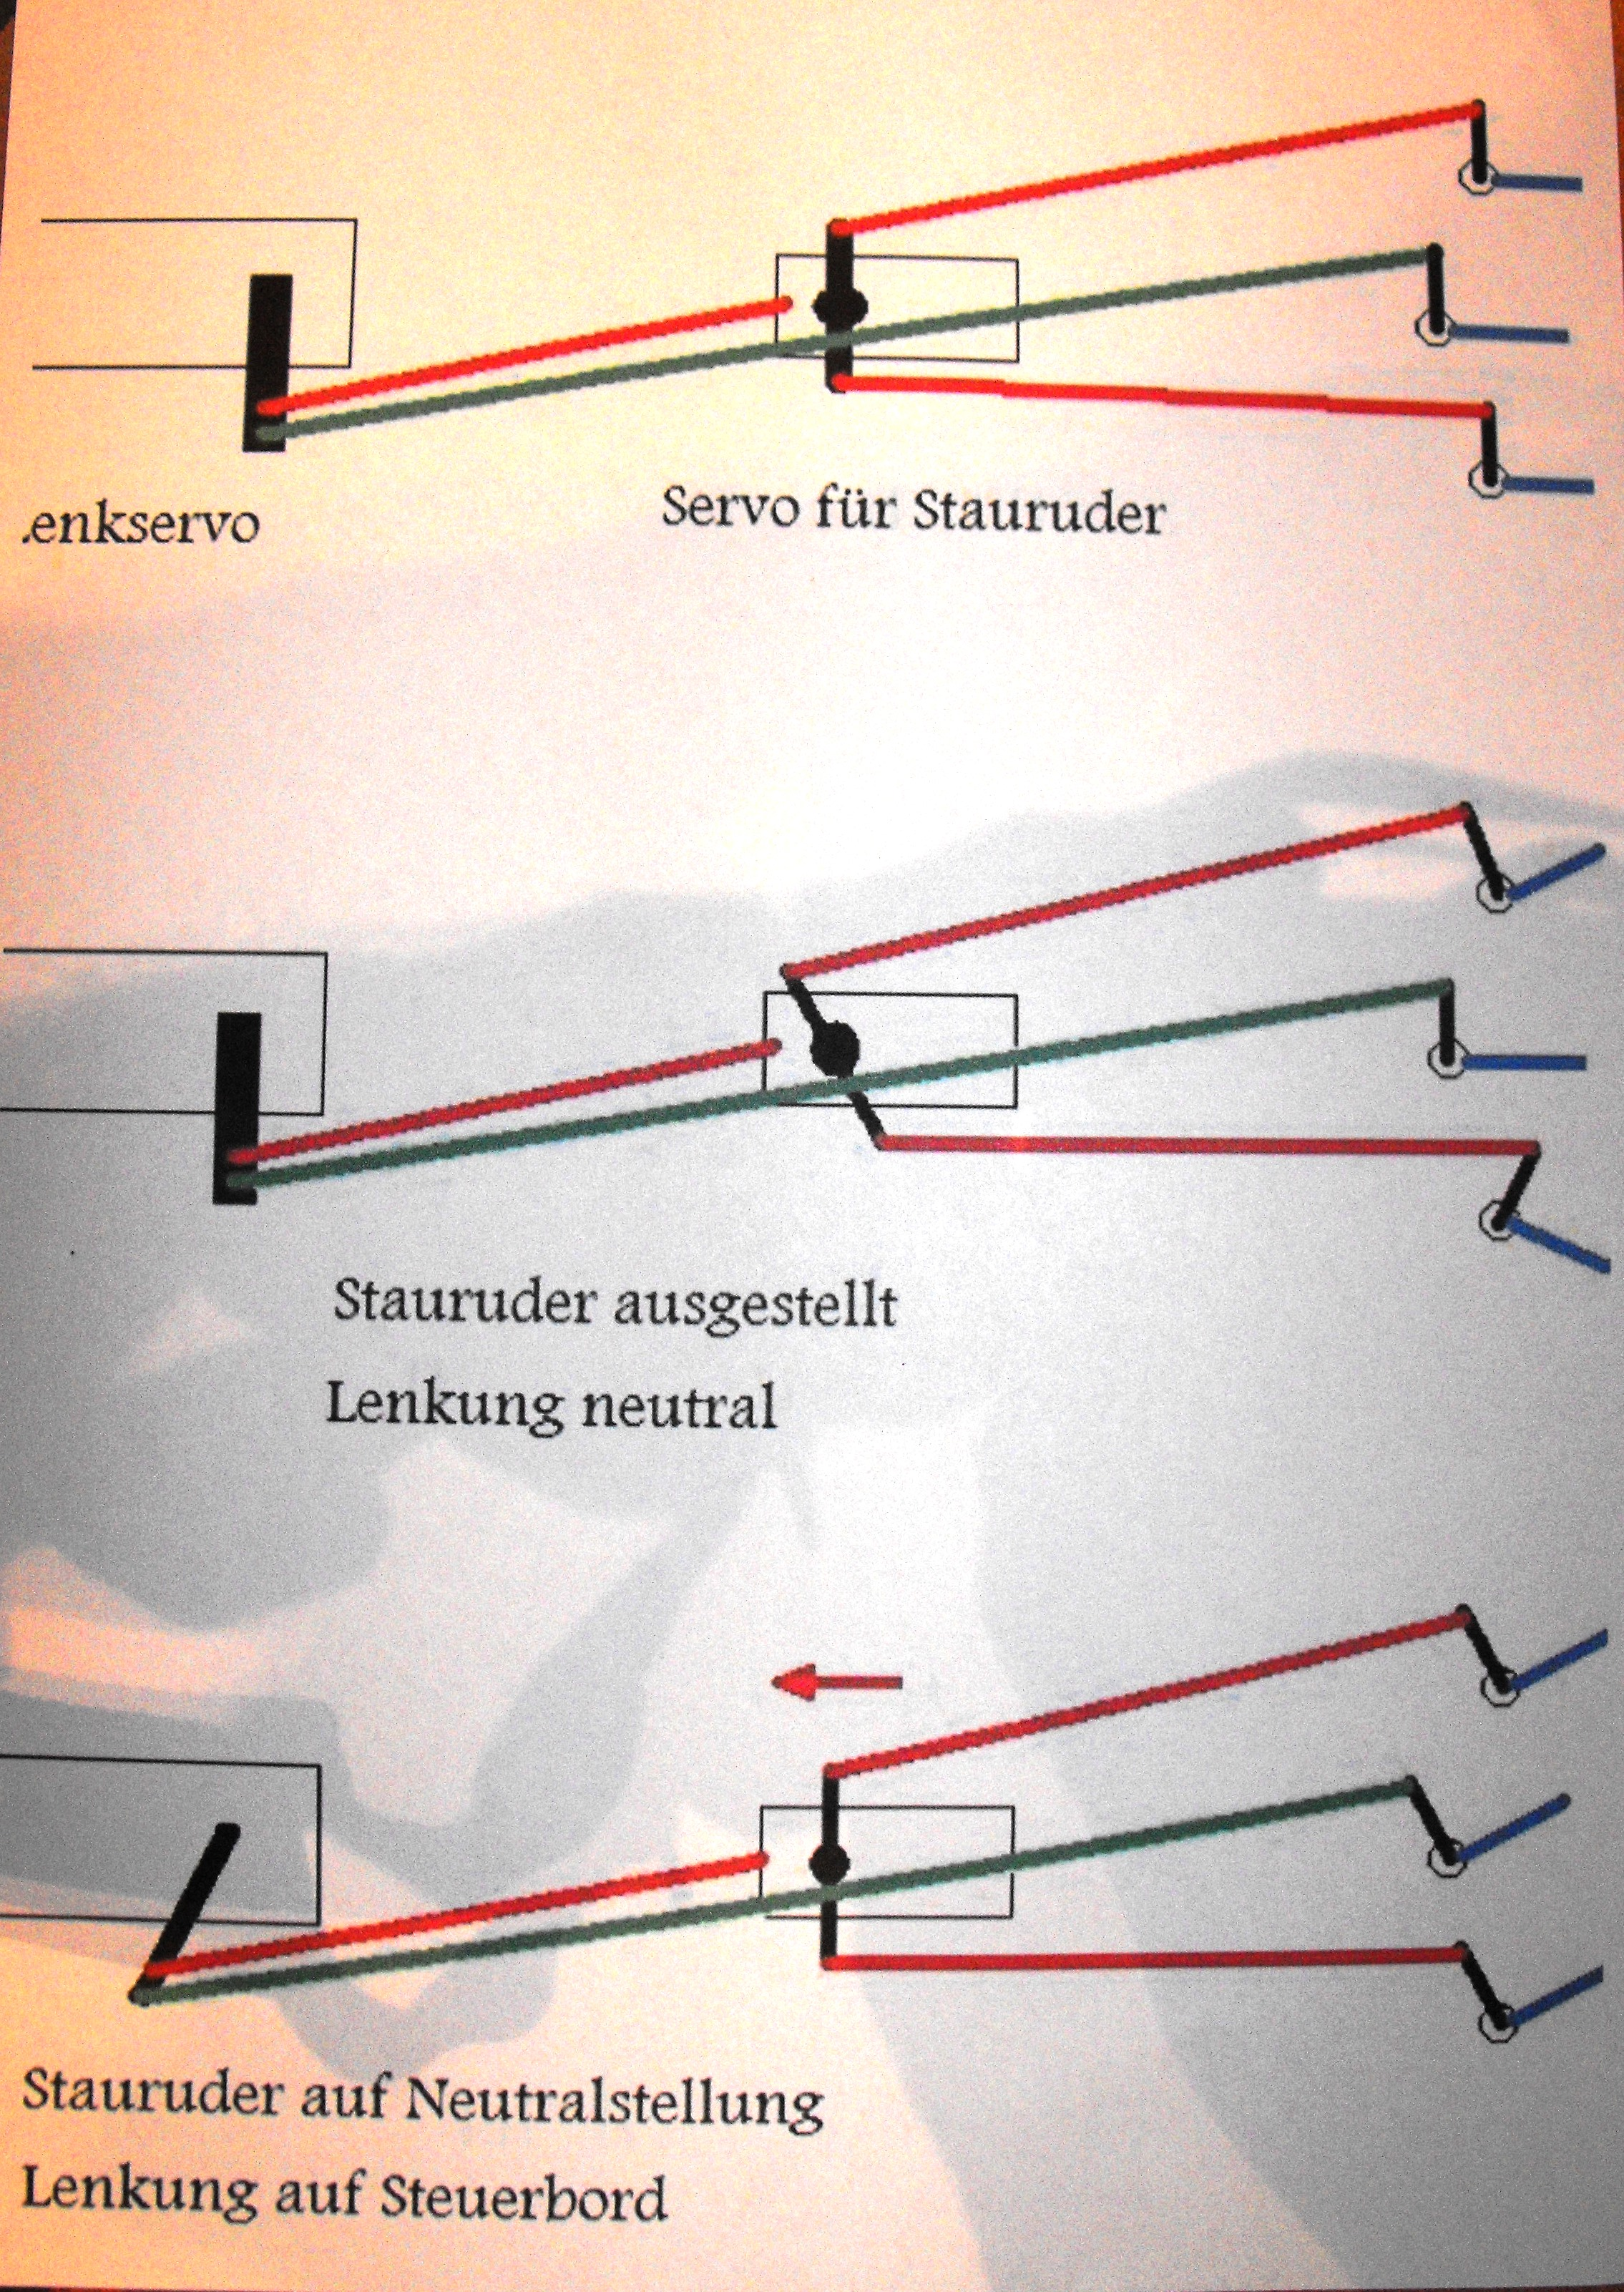 Click image for larger version  Name:Diagram Of Movement.JPG Views:97 Size:2.12 MB ID:1920071